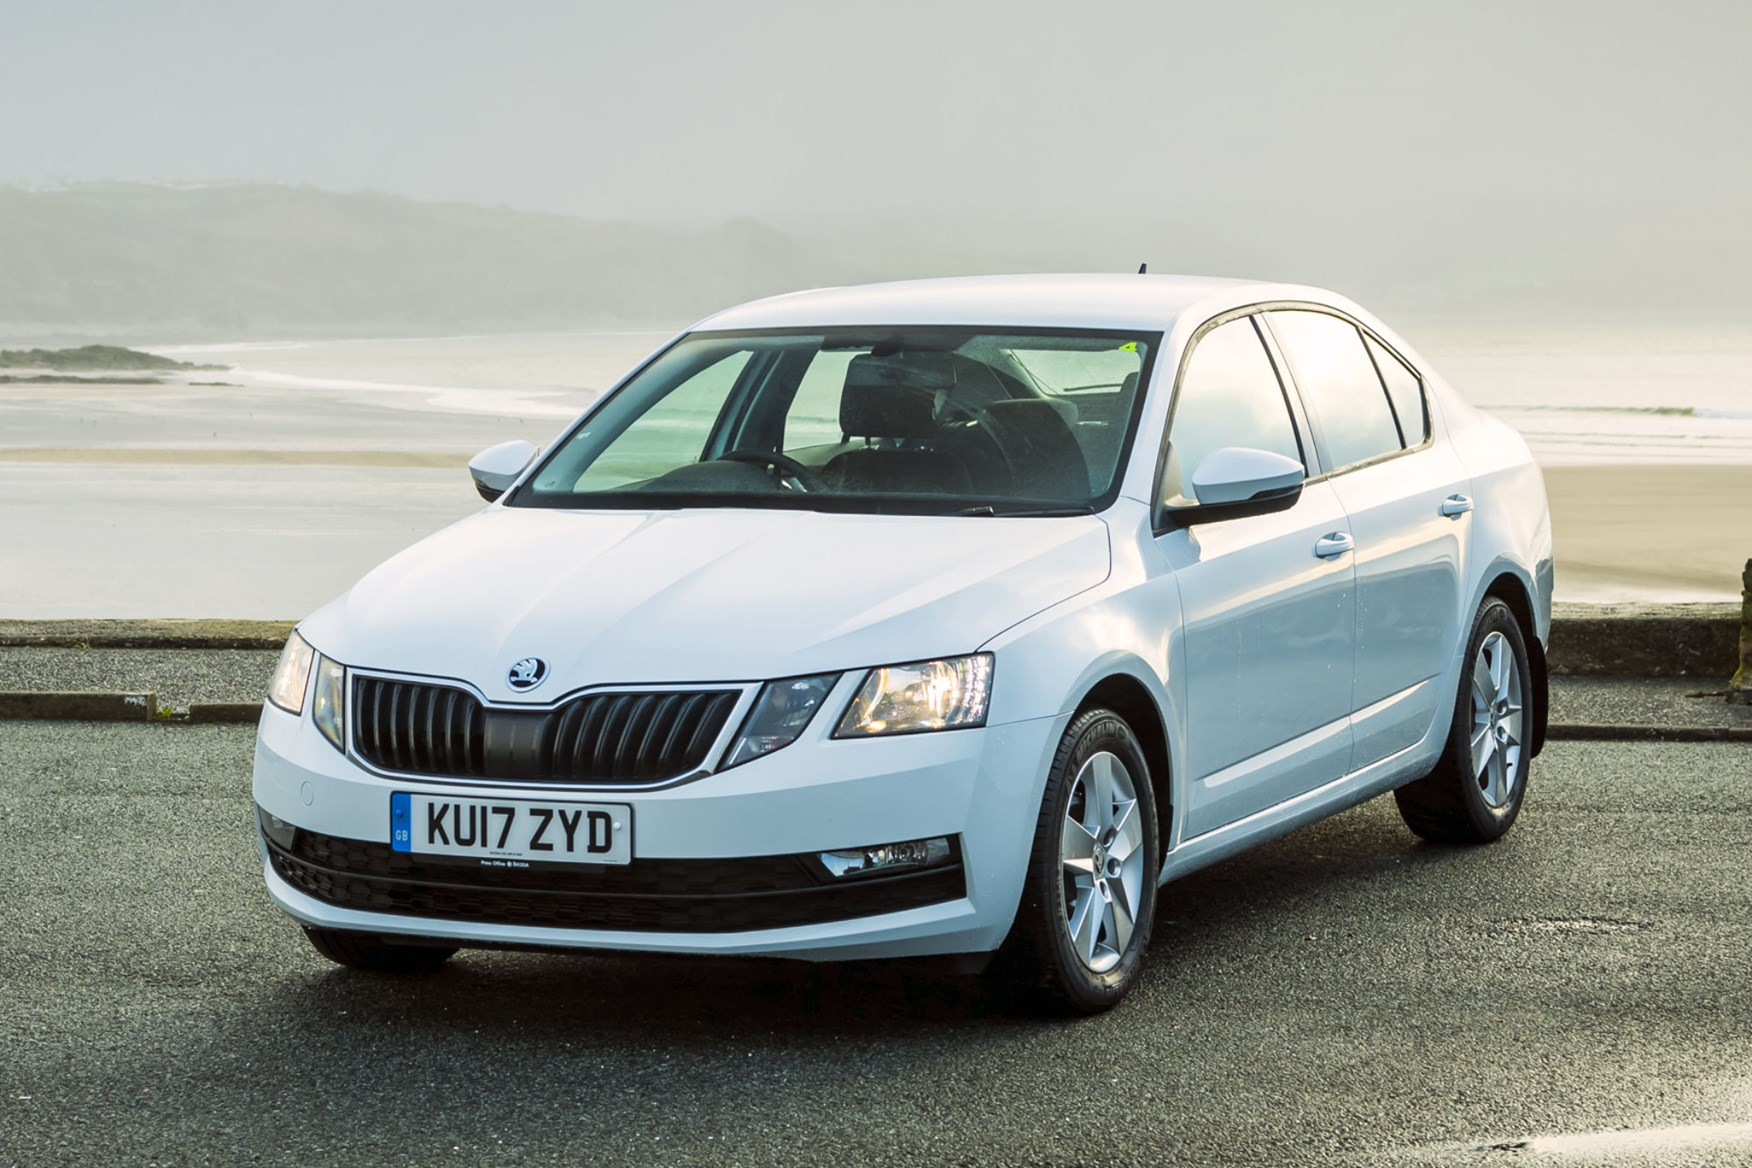 Best new cars for £200 per month